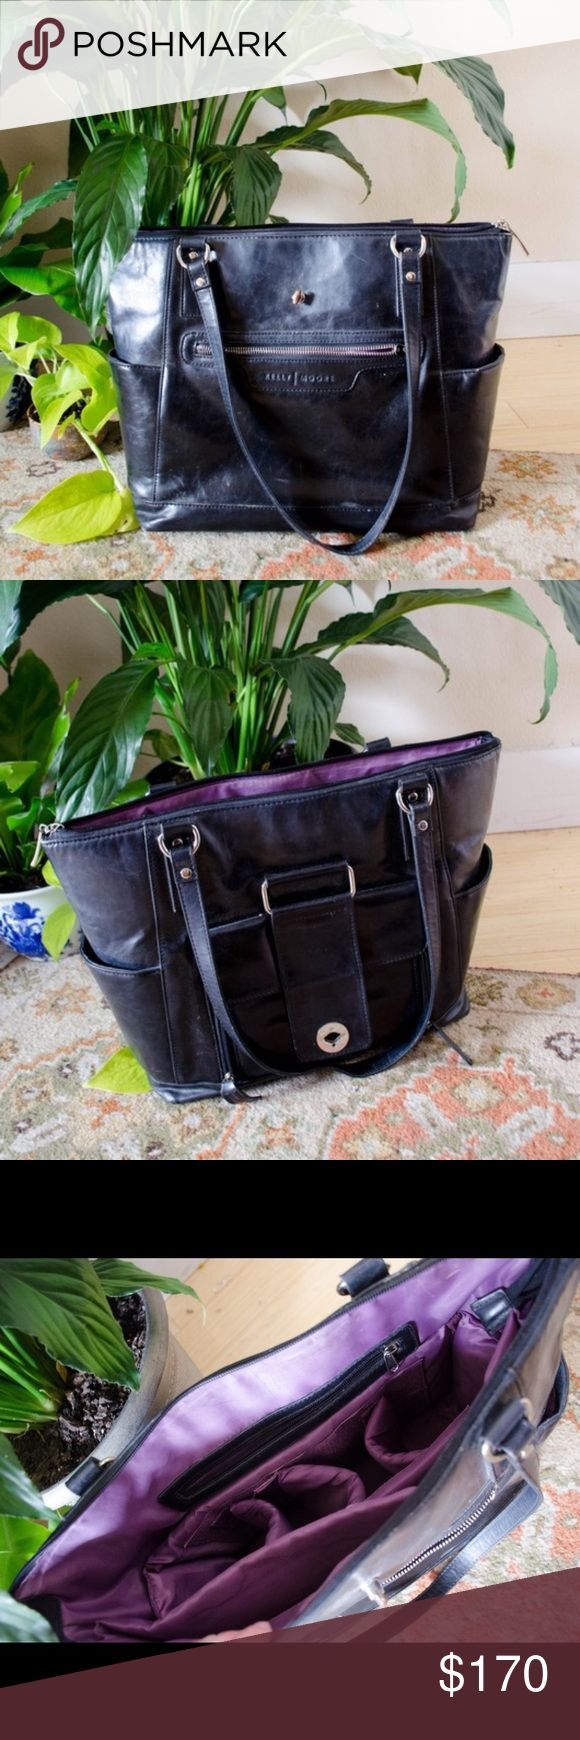 KELLY MOORE black camera bag purse tote Comes with all original accessories, such as the camera equipment slide in. It's in great condition for being nearly 3 years old, and I always get compliments on the brown bag I have -- people constantly asking where I get it! It's a larger bag, about 18 inches at it's widest point - great for using as a diaper bag on trips or something like that. It's very versatile!   Originally $290.00 Kelly Moore Bags Laptop Bags